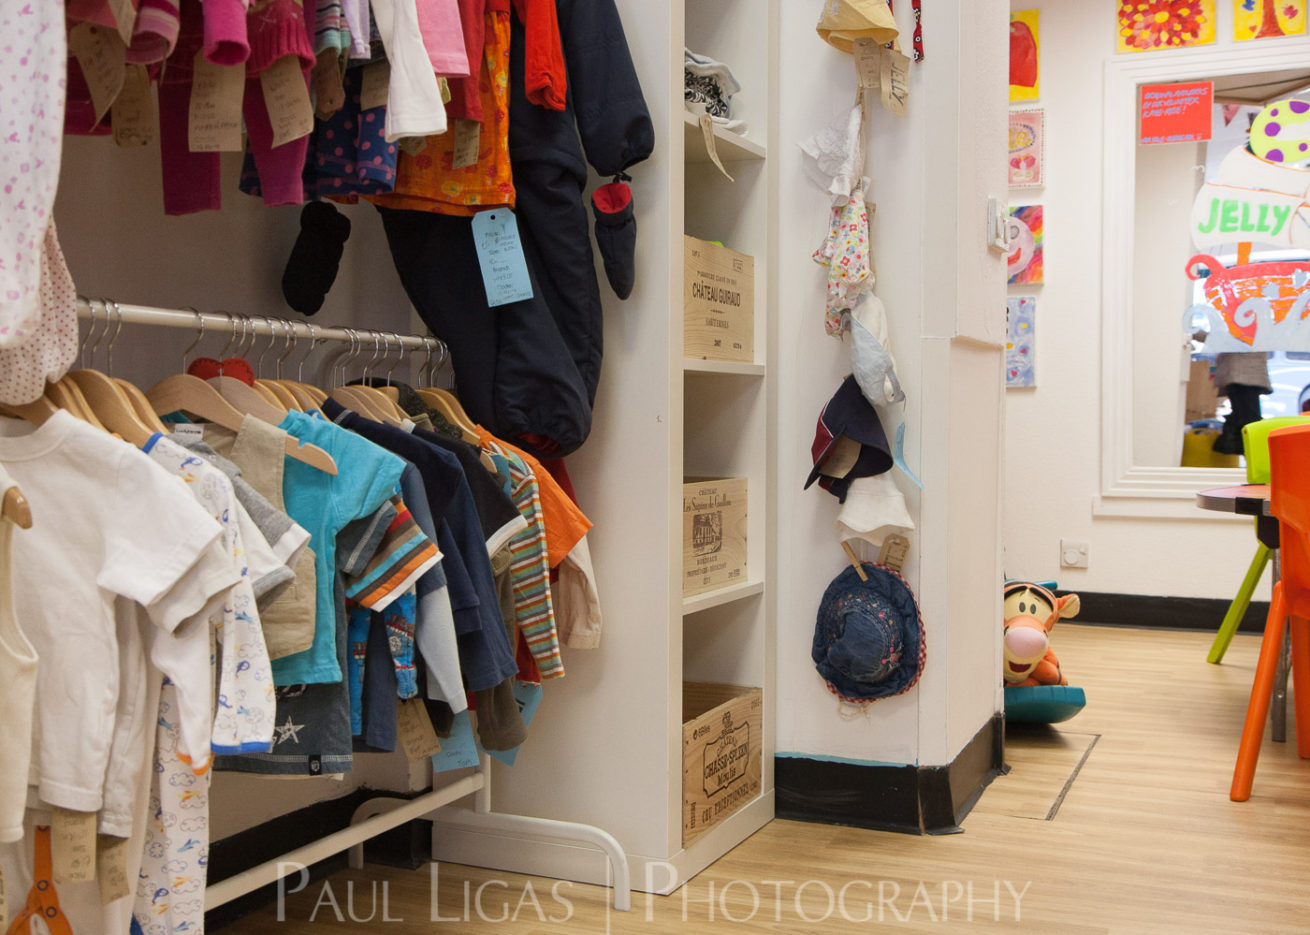 Jelly Charity Shop, Exeter Community Initiatives, property product photographer photography 3556